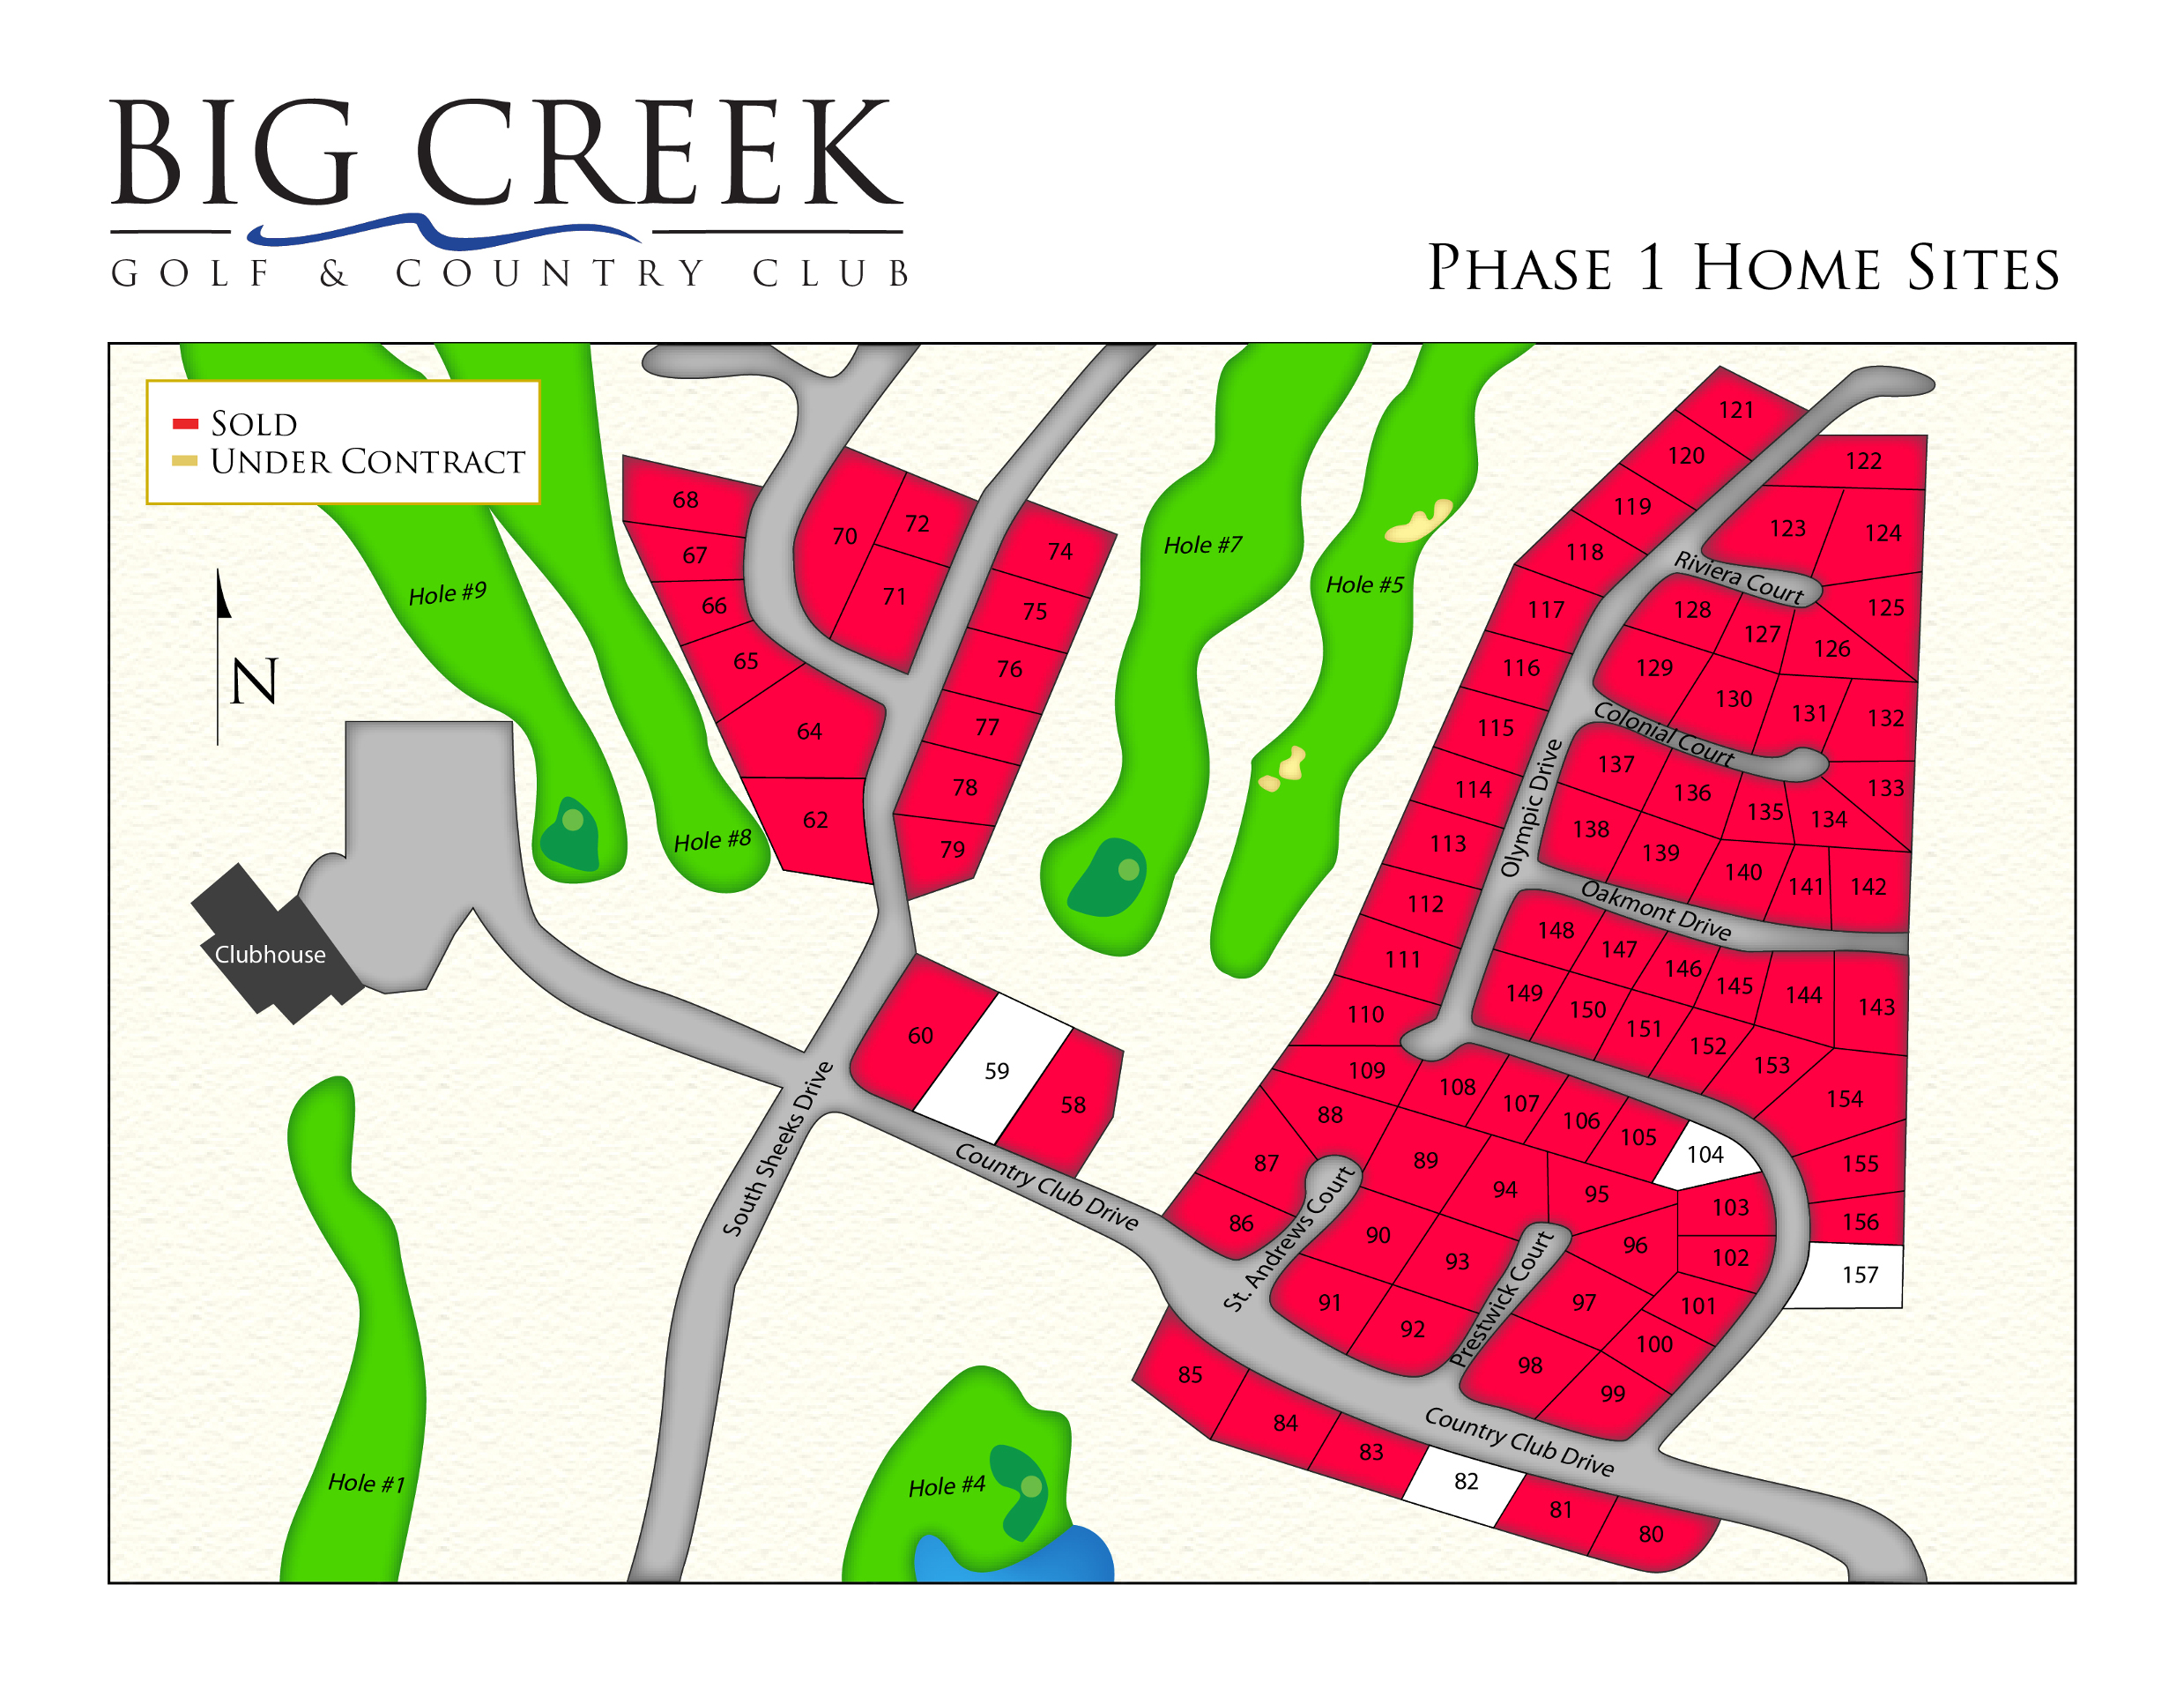 Big Creek Golf & Country Club Phase 1